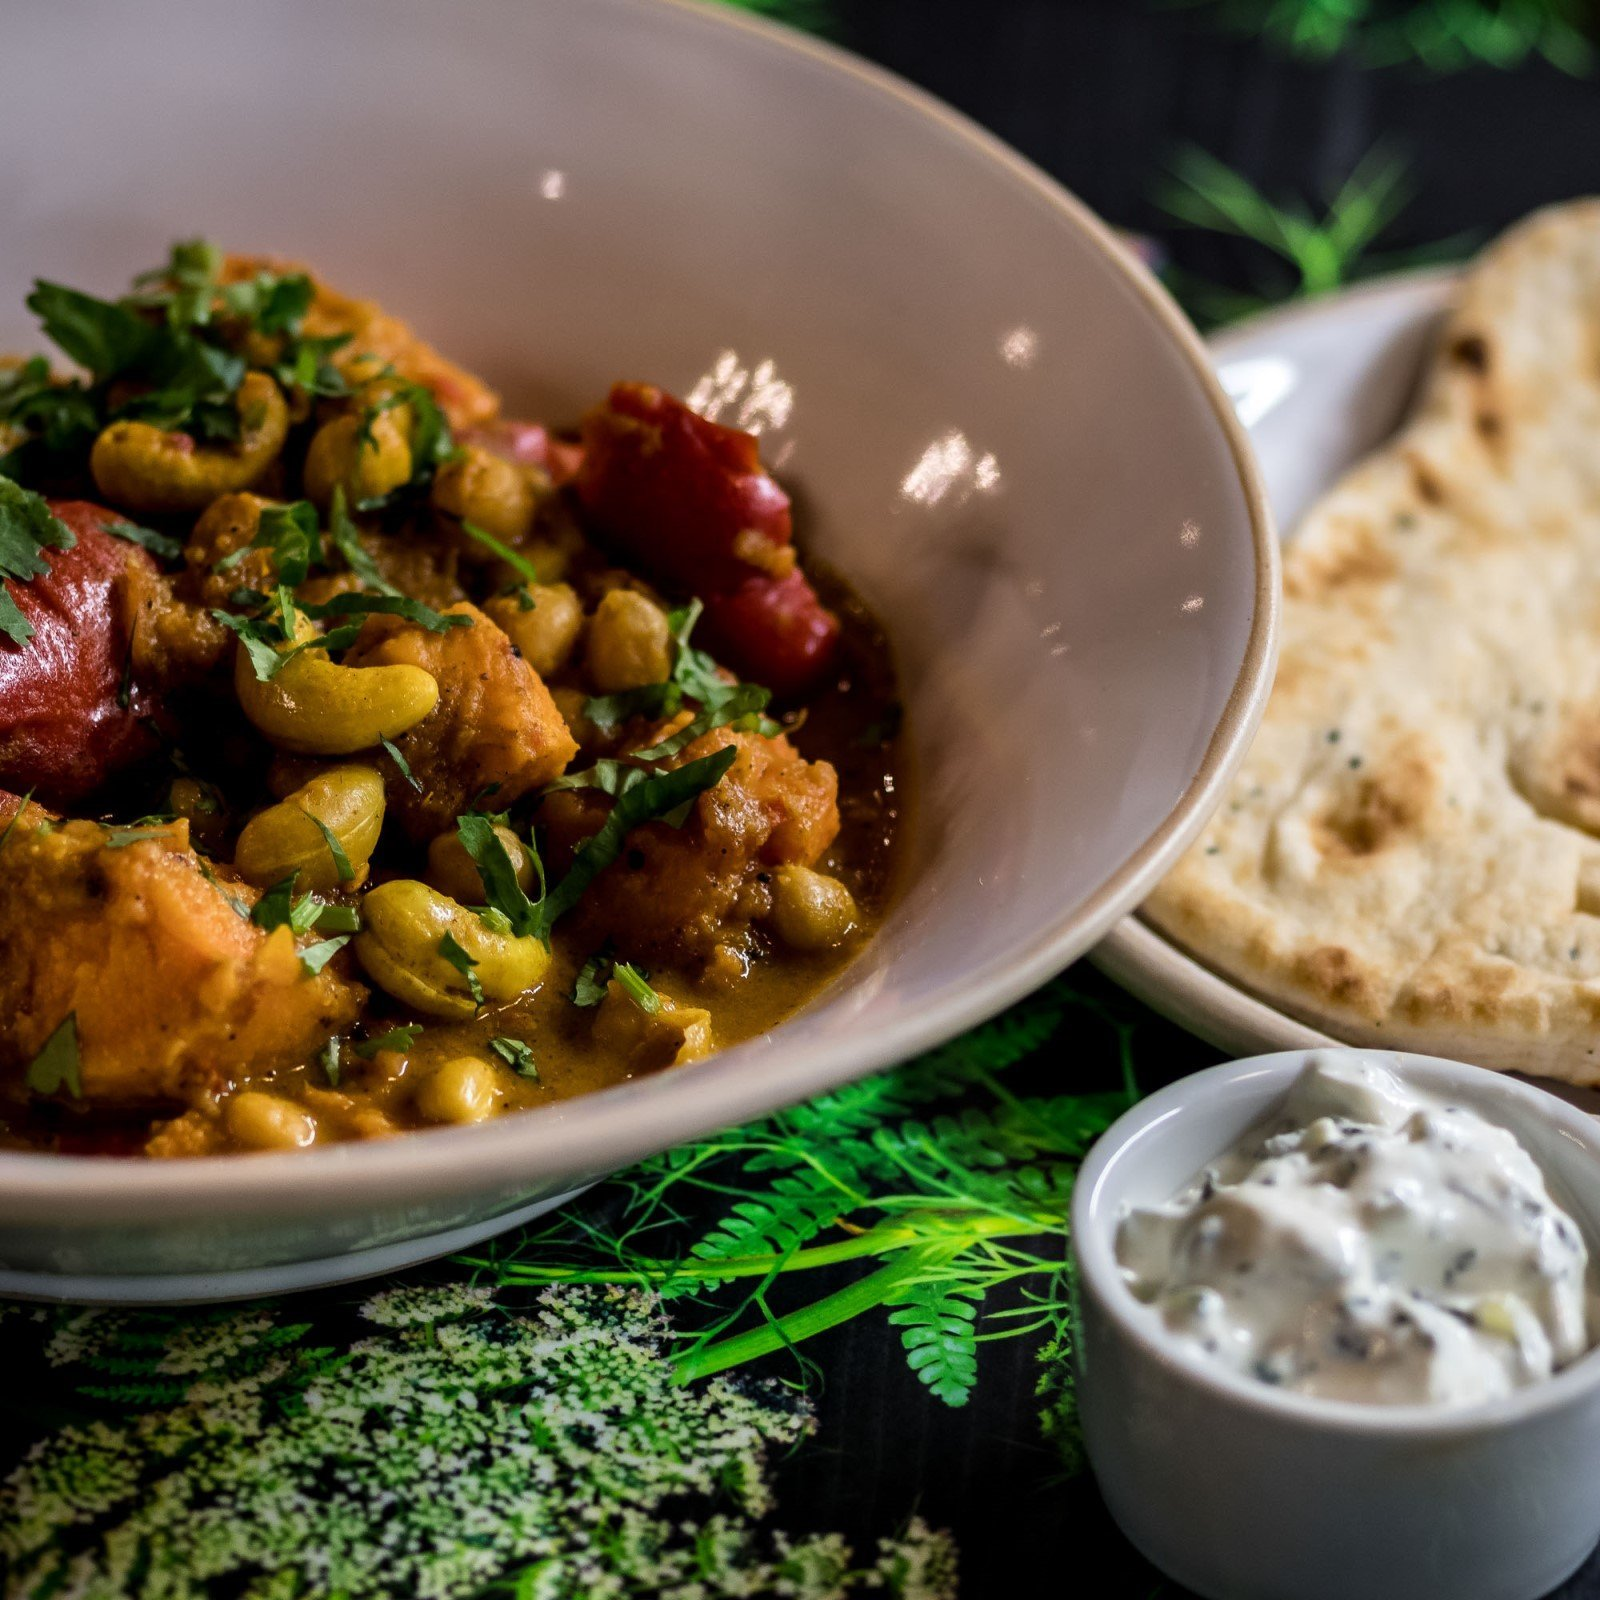 Burford Garden Company's Sri Lankan Vegetable Curry Recipe